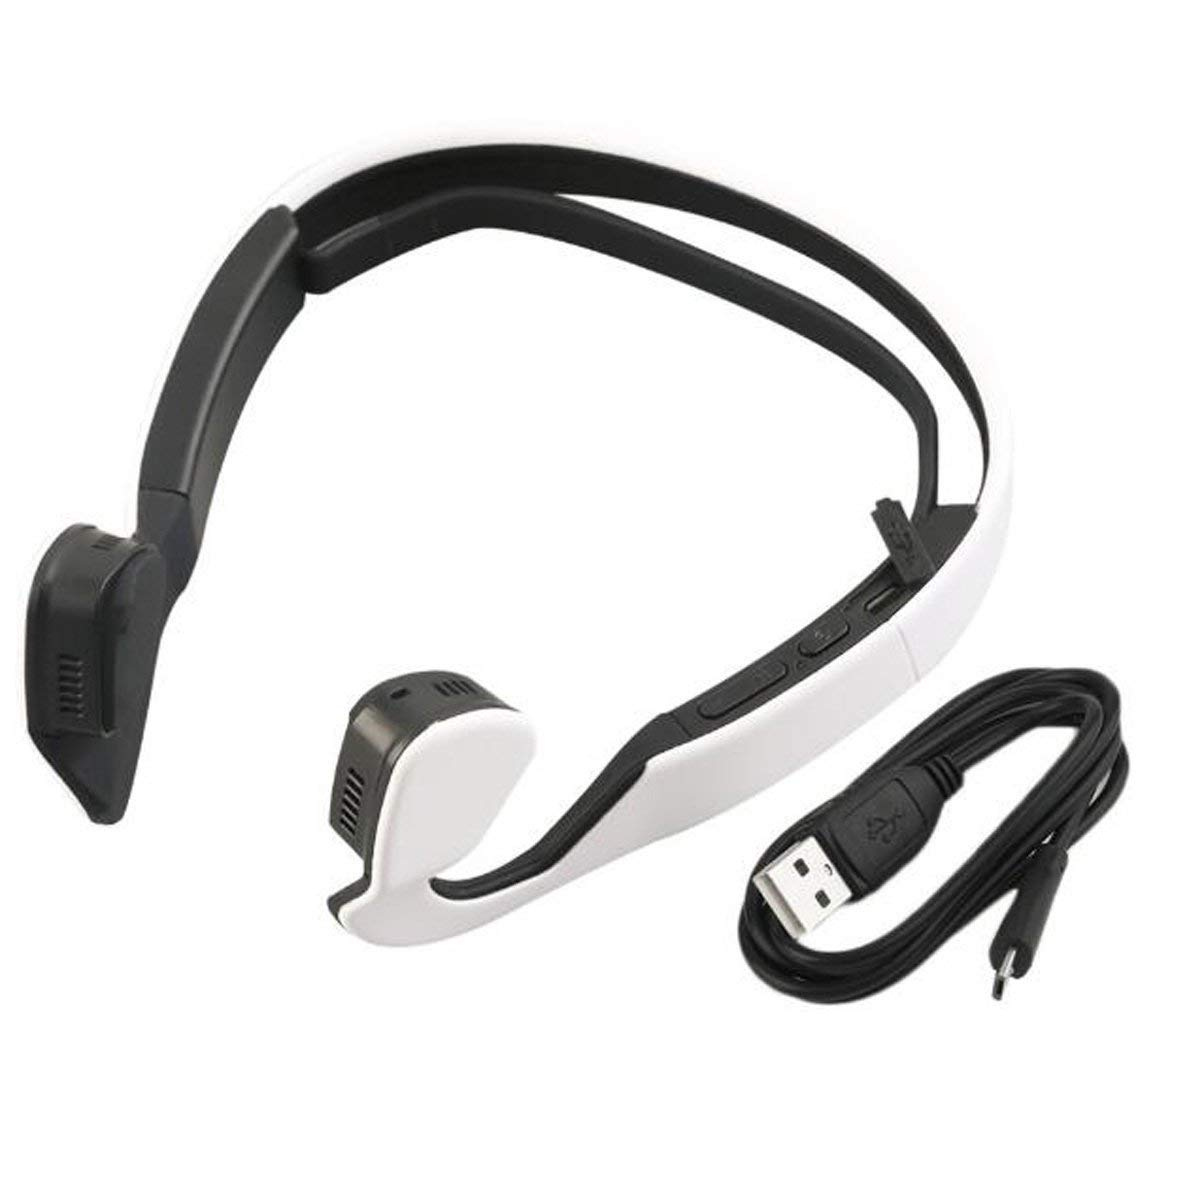 DANDANJIE New Bone Conduction Bluetooth 4.1 Noise Reduction Waterproof Sweat Headset Mobile Bluetooth Headset Bone Conduction Headset Wireless Hanging After Running, Driving, Riding Bluetooth Headset